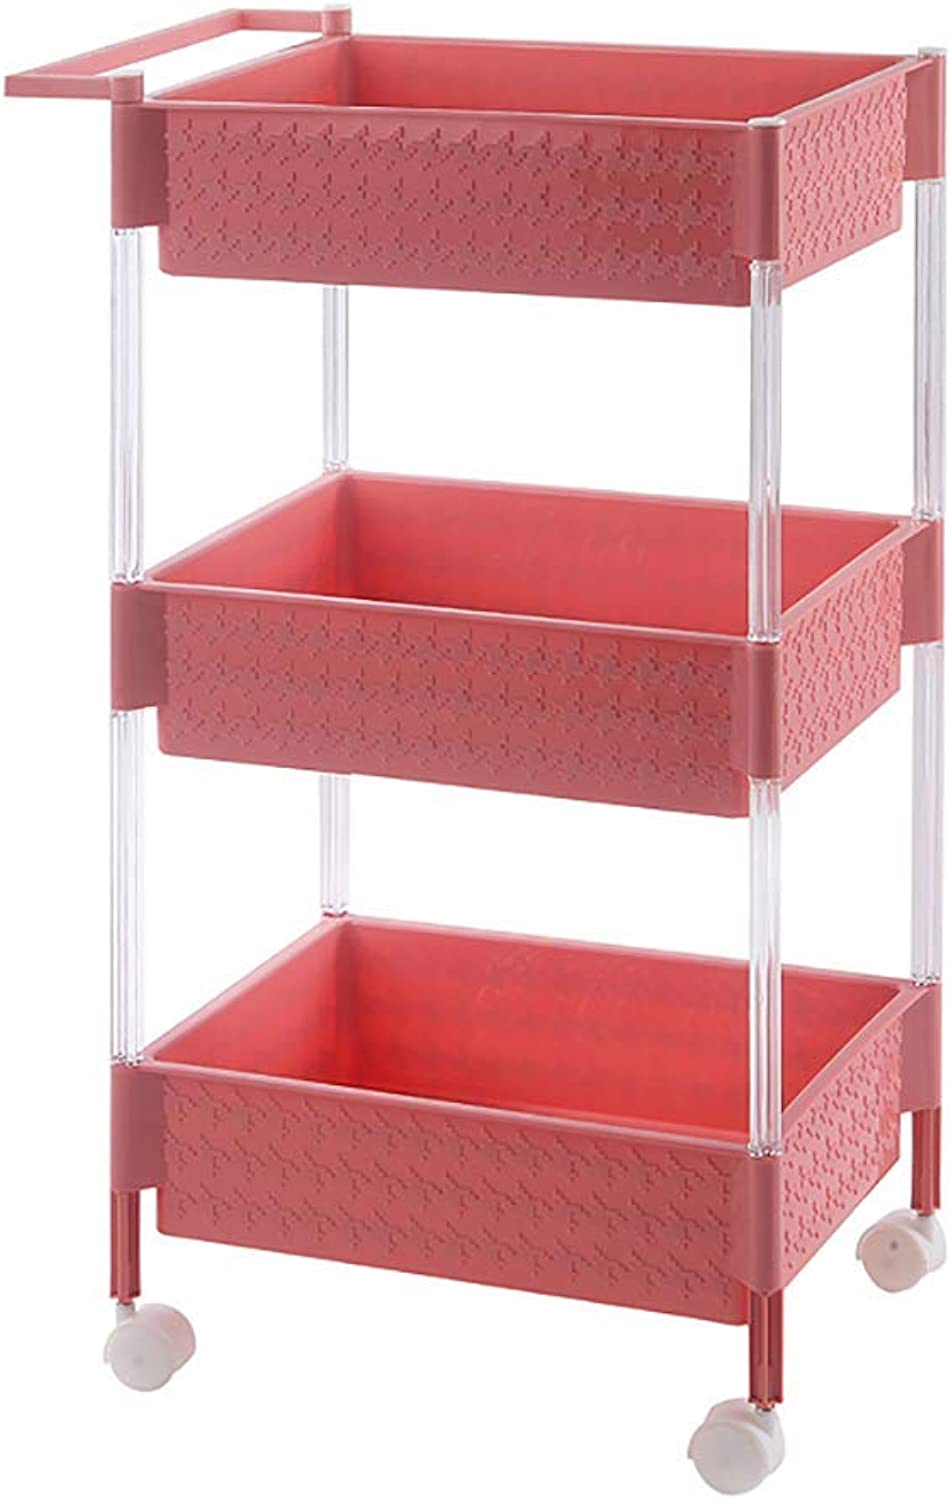 3-Tier Slide Out Removable Storage Tower Kitchen Bedroom Storage Rack Bathroom Shelf with Wheels